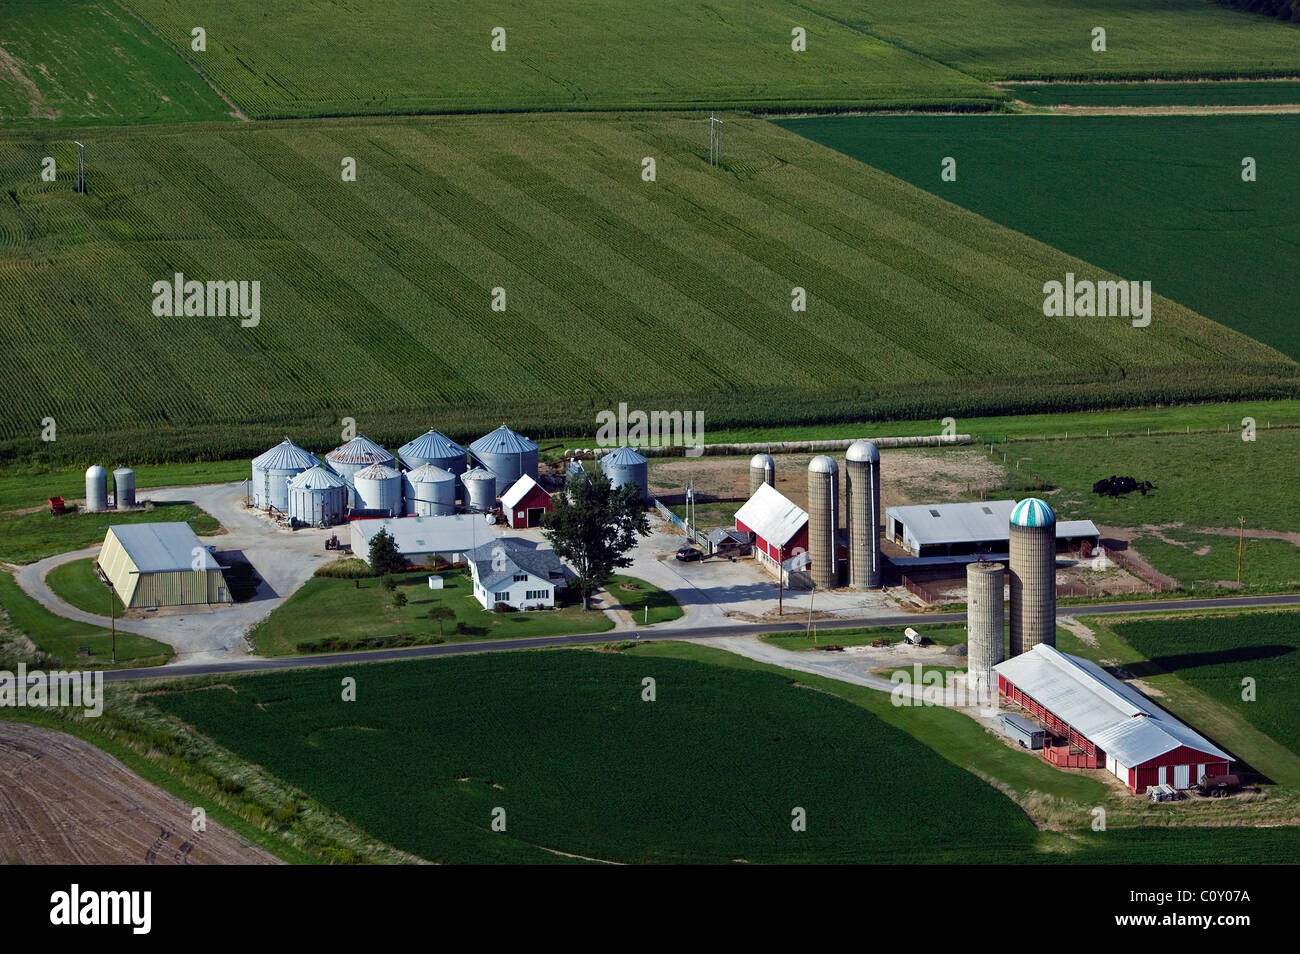 aerial view above silos farm buildings southern Illinois - Stock Image